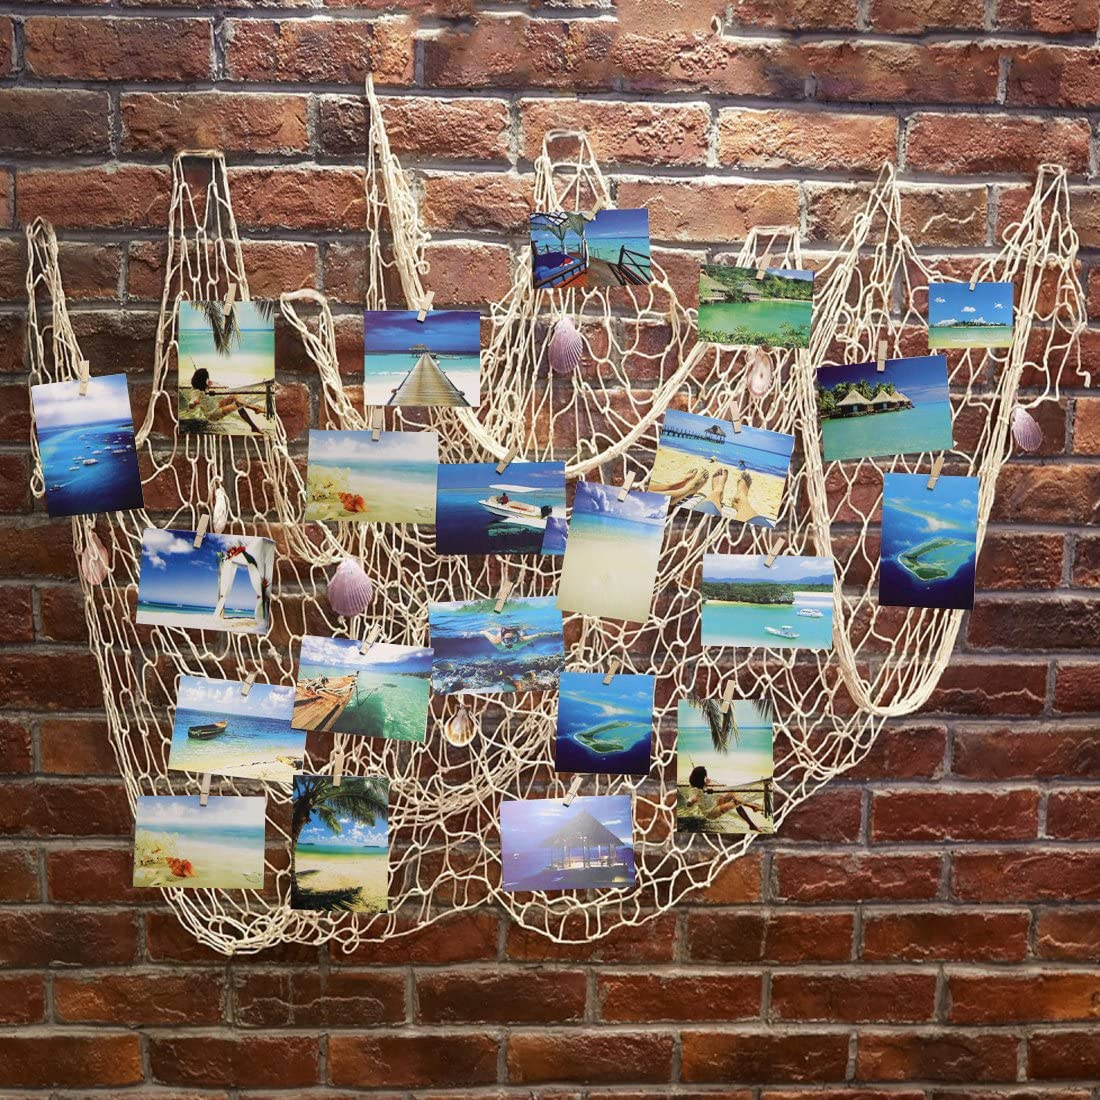 YLMY 79x40 Inch Nautical Themed Mediterranean Fishing Net Photo Wall Decor, Photo Hanging Display Frames with 30 Clips, Picture Cards Artworks Organizer for Dorm, Home,Beach Themed Party Decorations